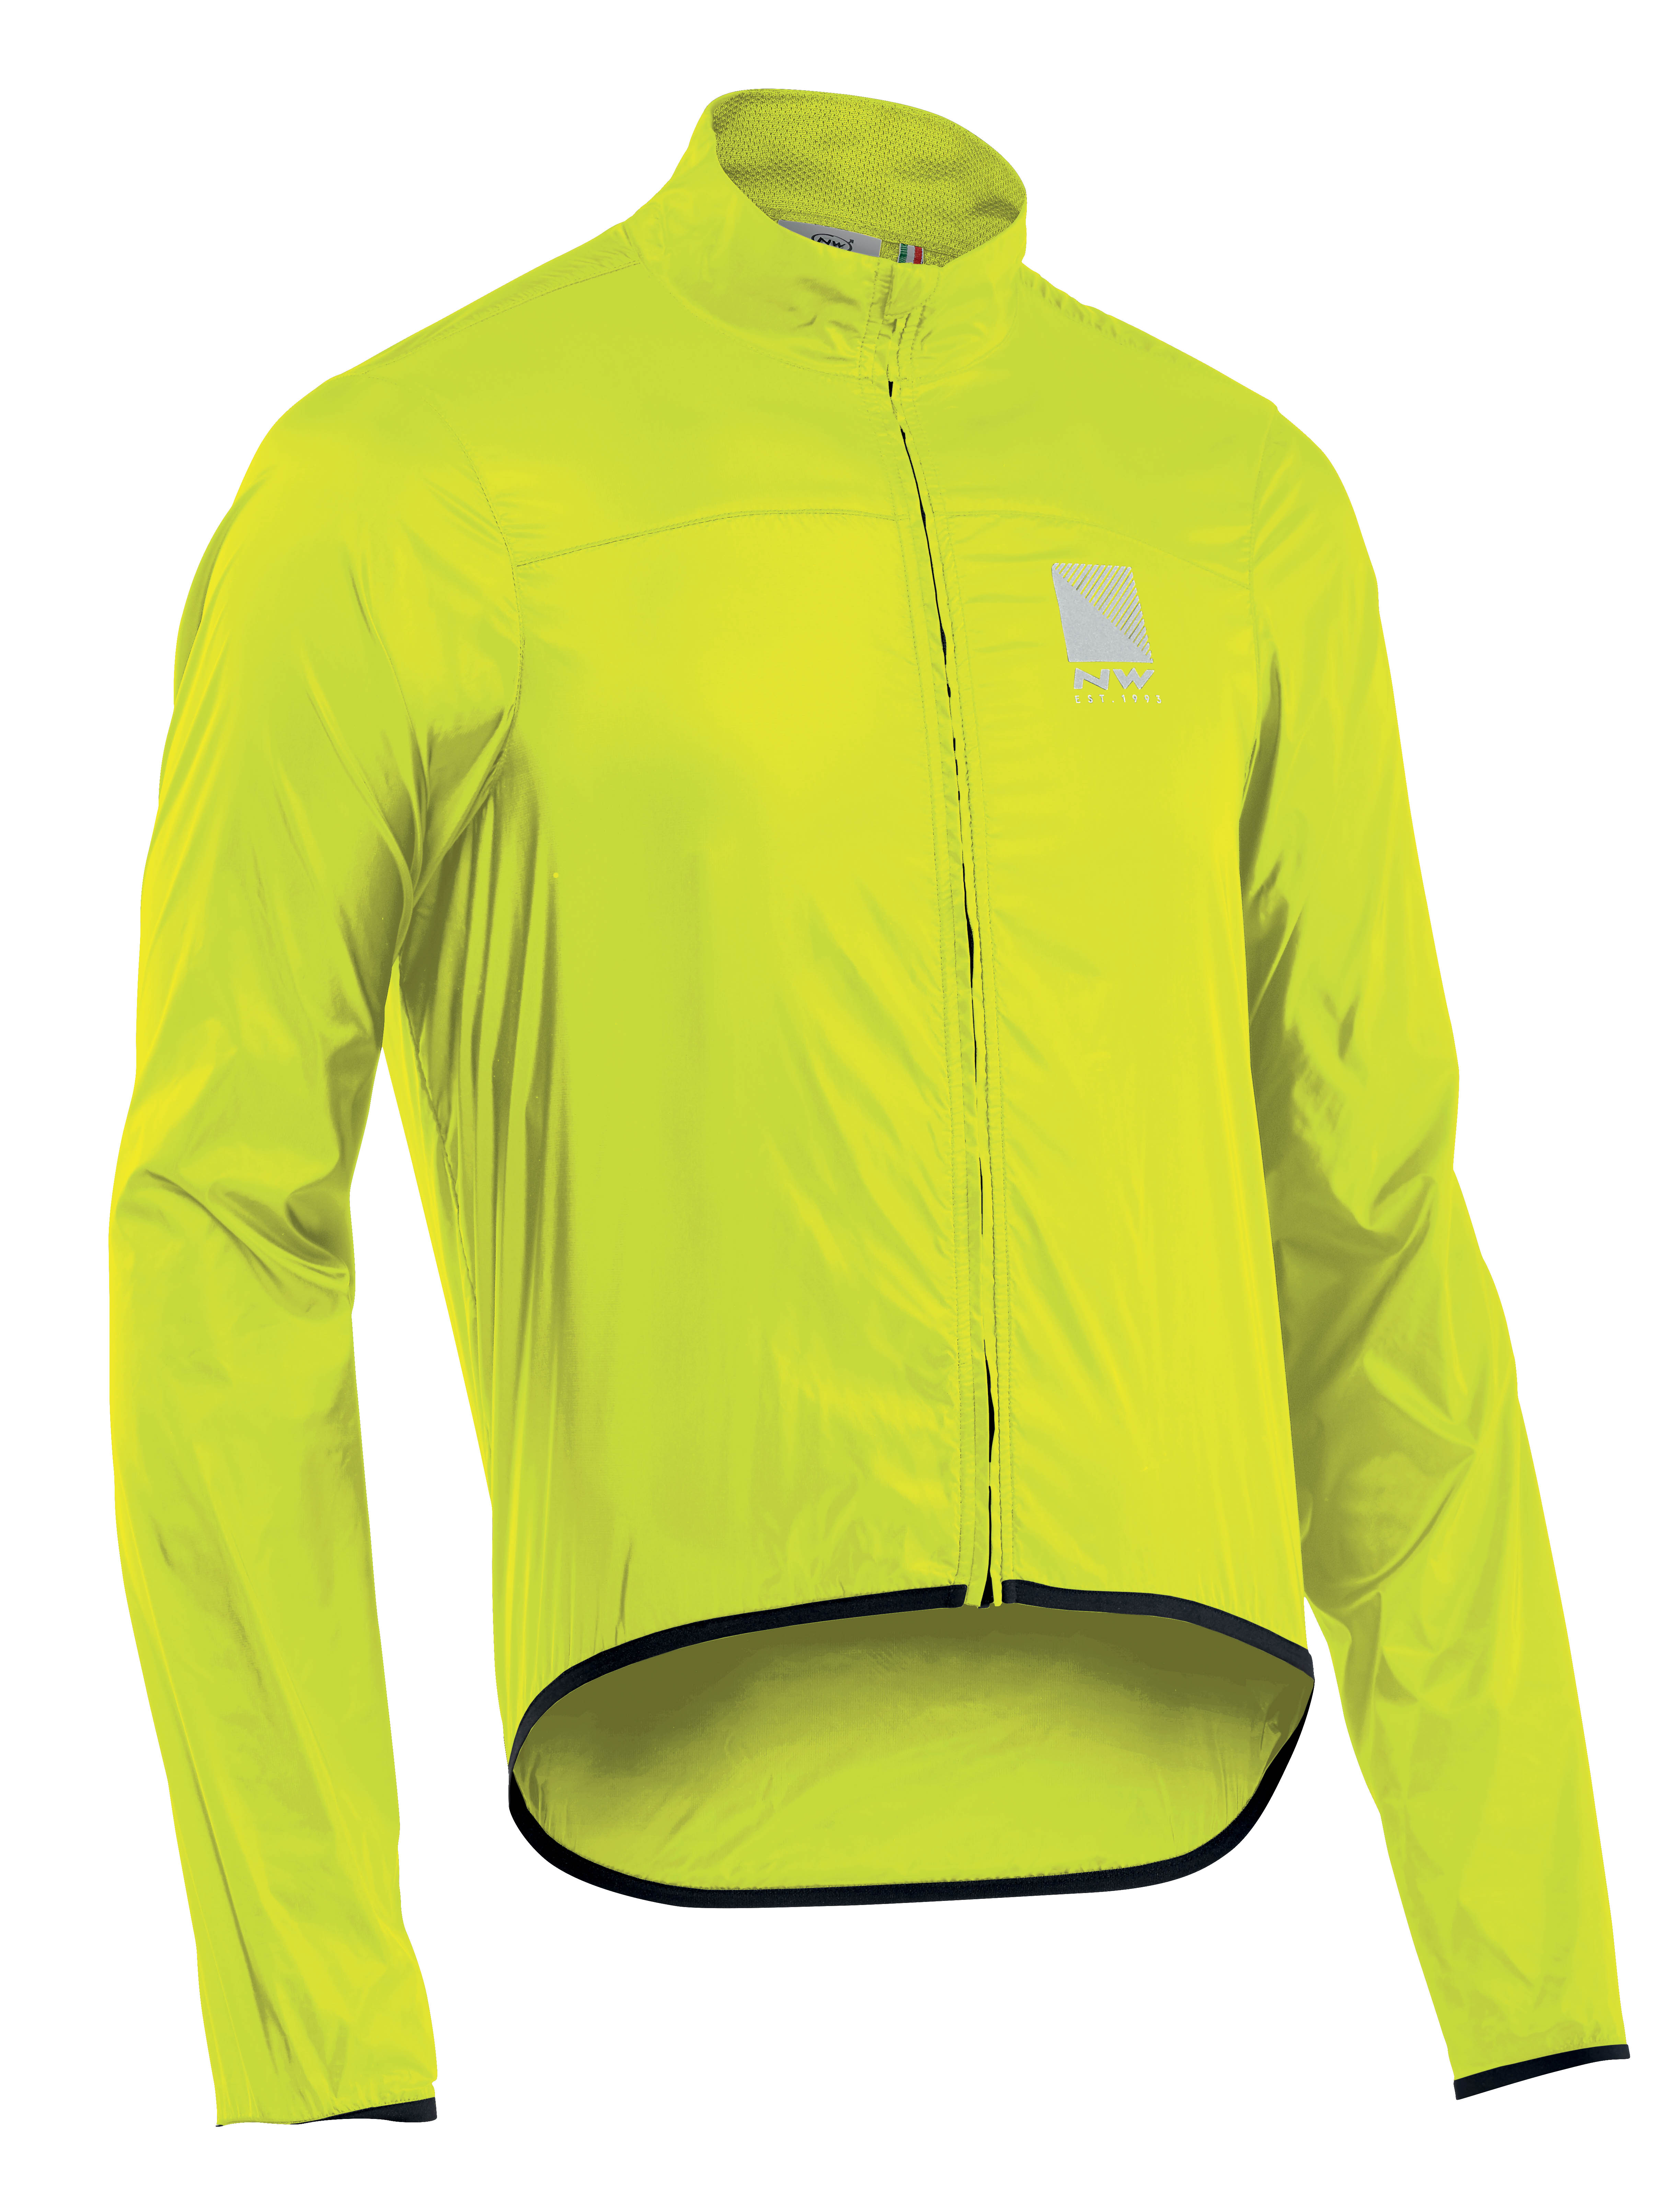 Dzseki NORTHWAVE eső BREEZE 2 3XL fluo sárga